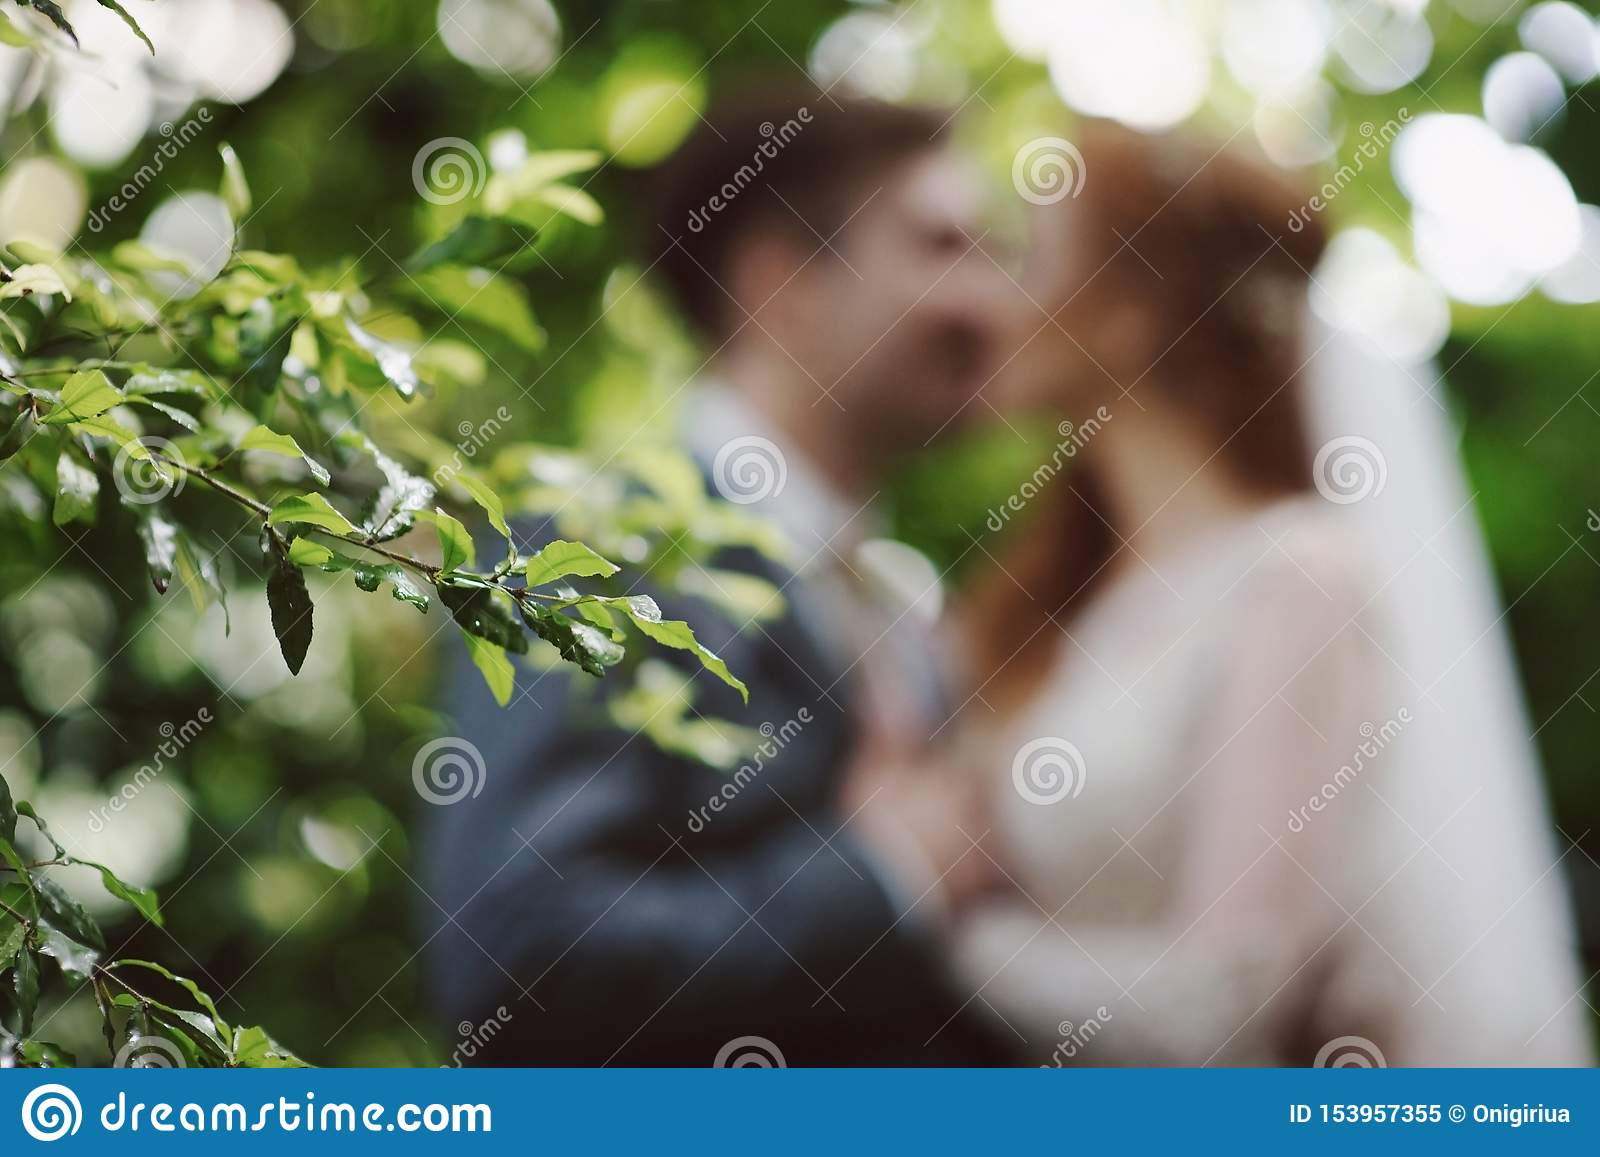 Wedding style abstract blurred background bride and groom kissing in park